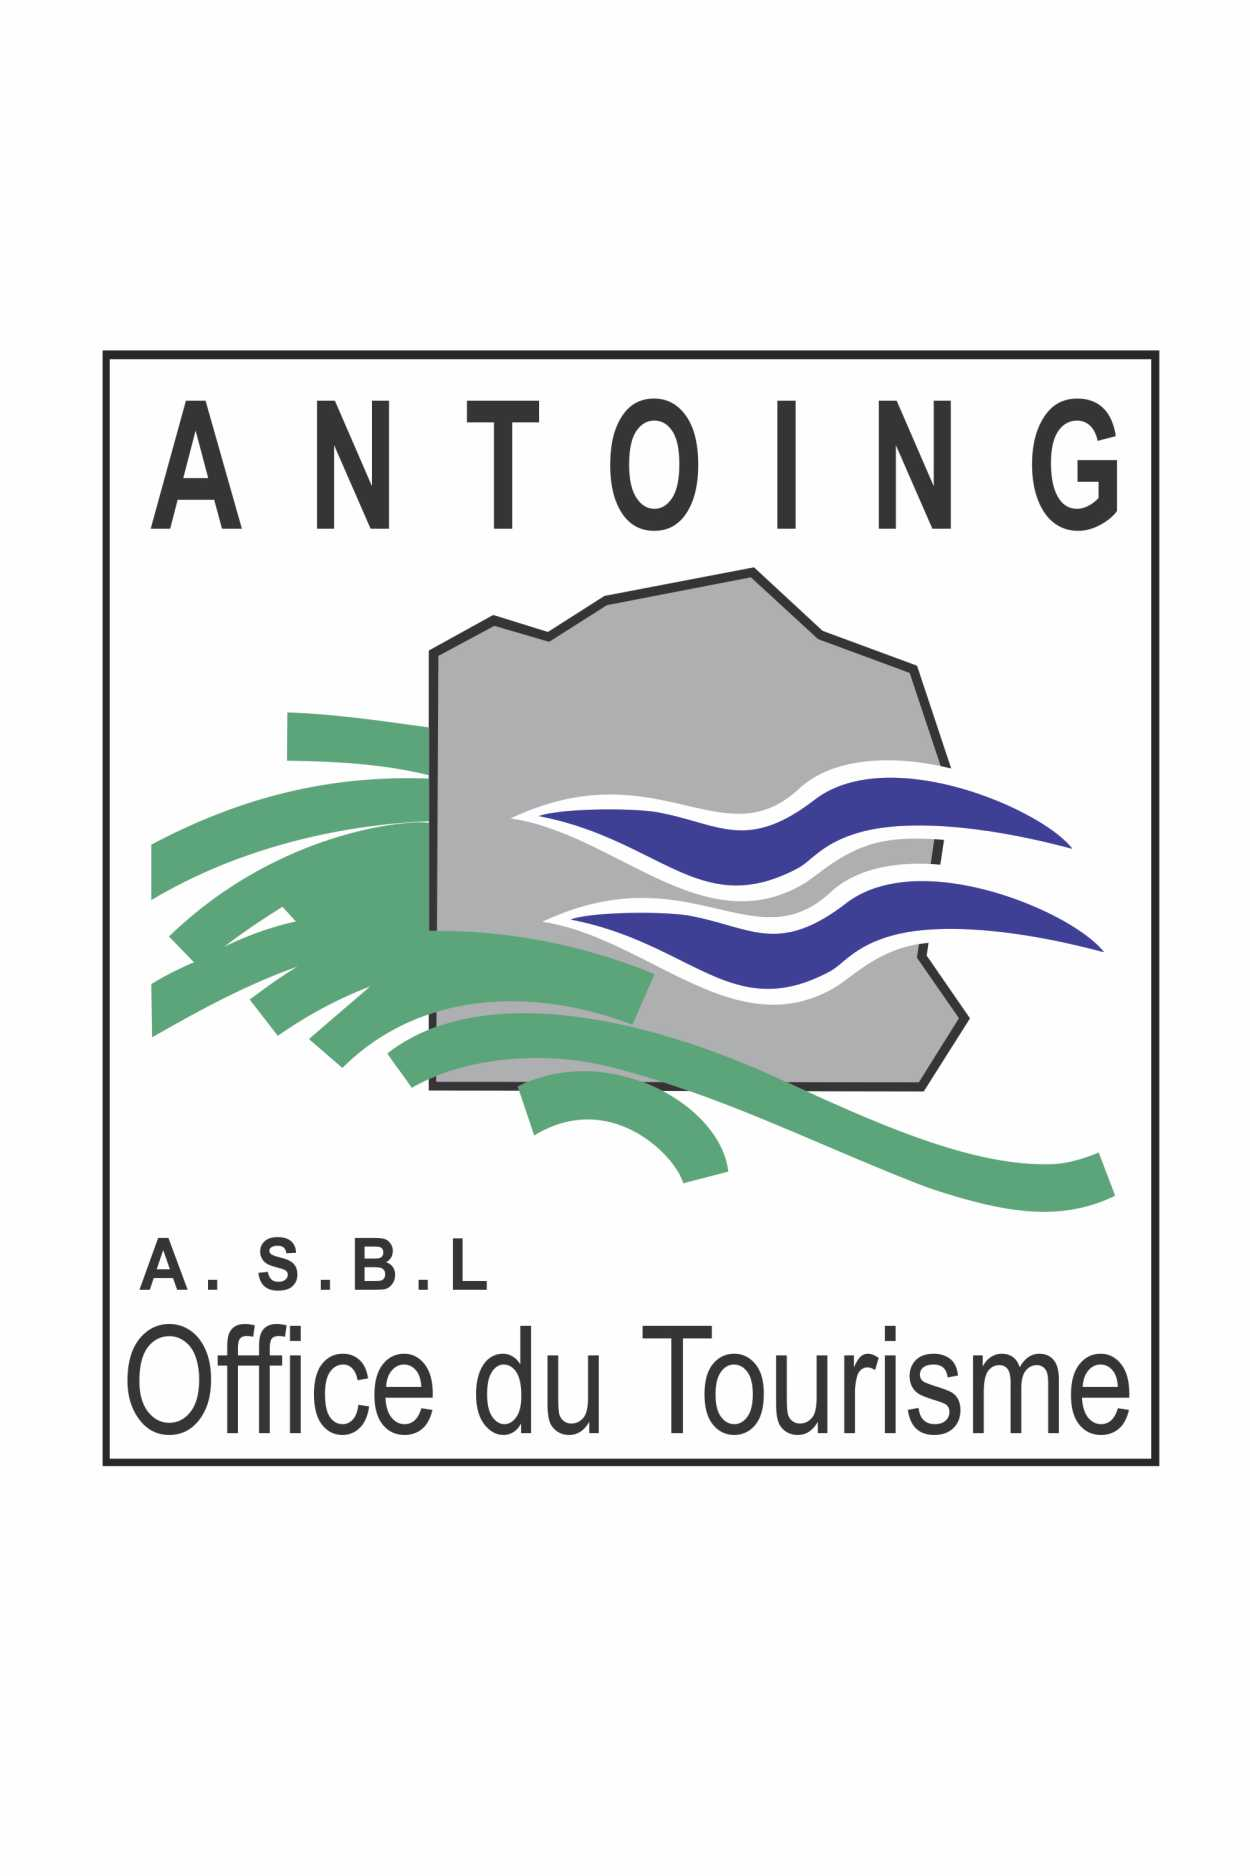 Office du tourisme site de antoing for Office du tourisme yvelines